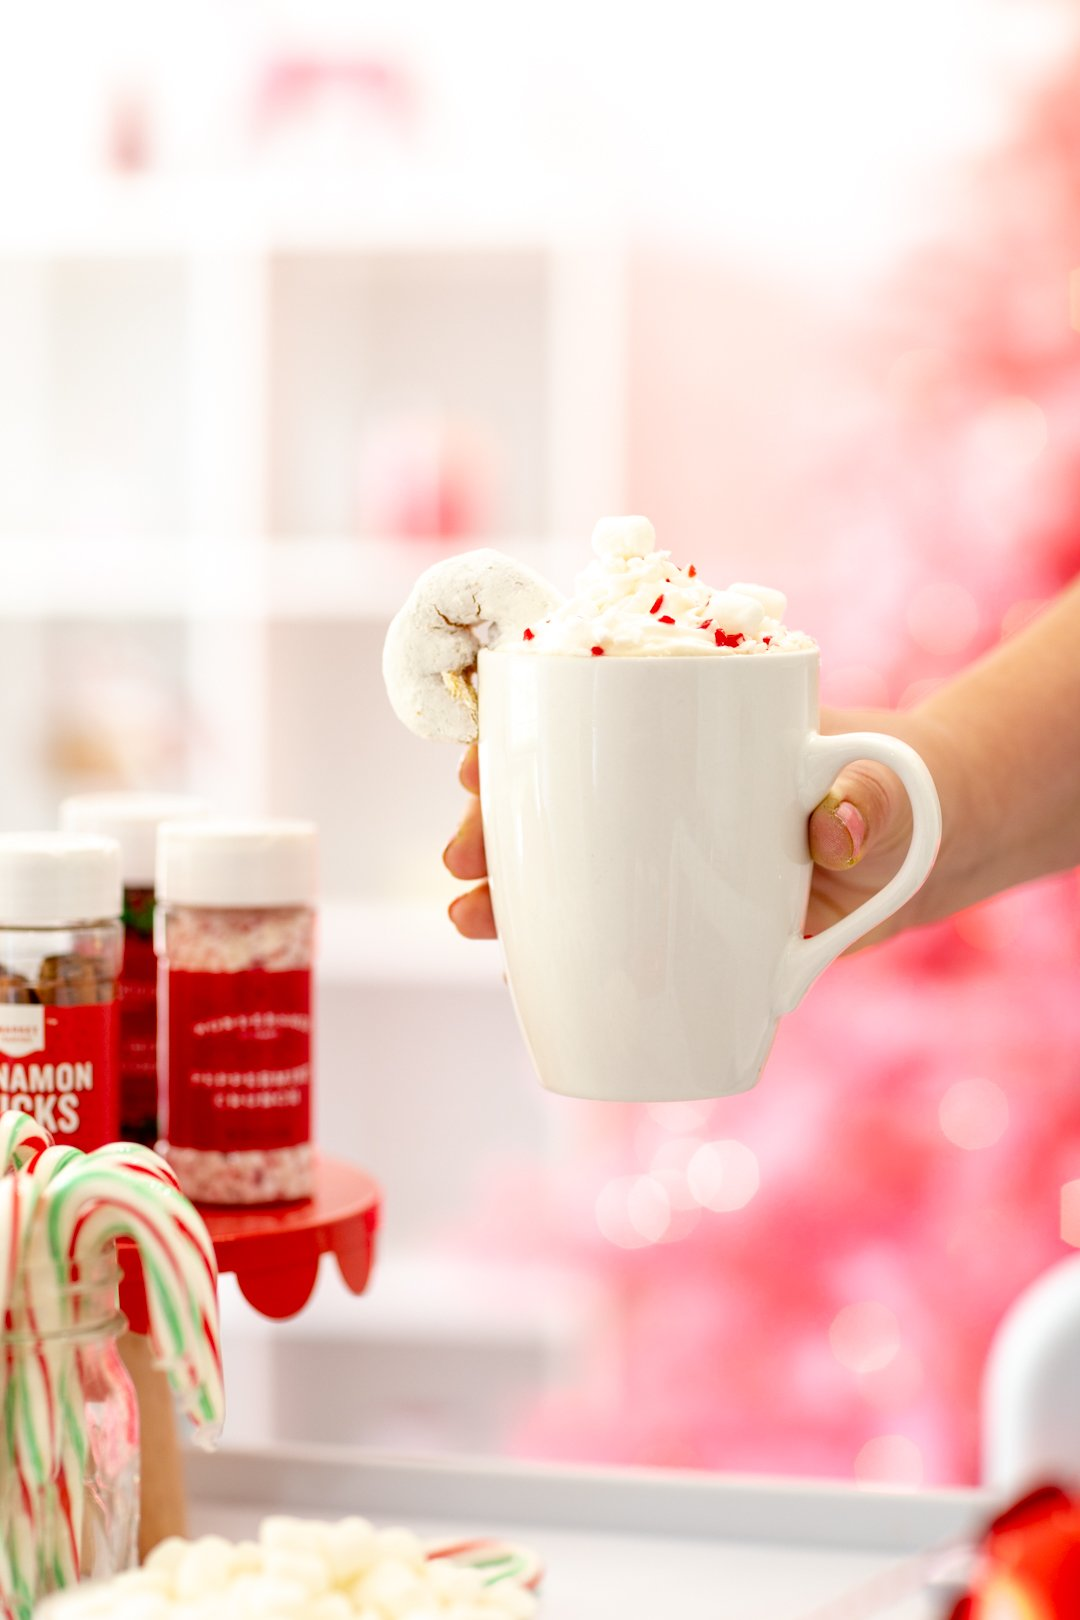 holding mug with whipped cream and candy cane